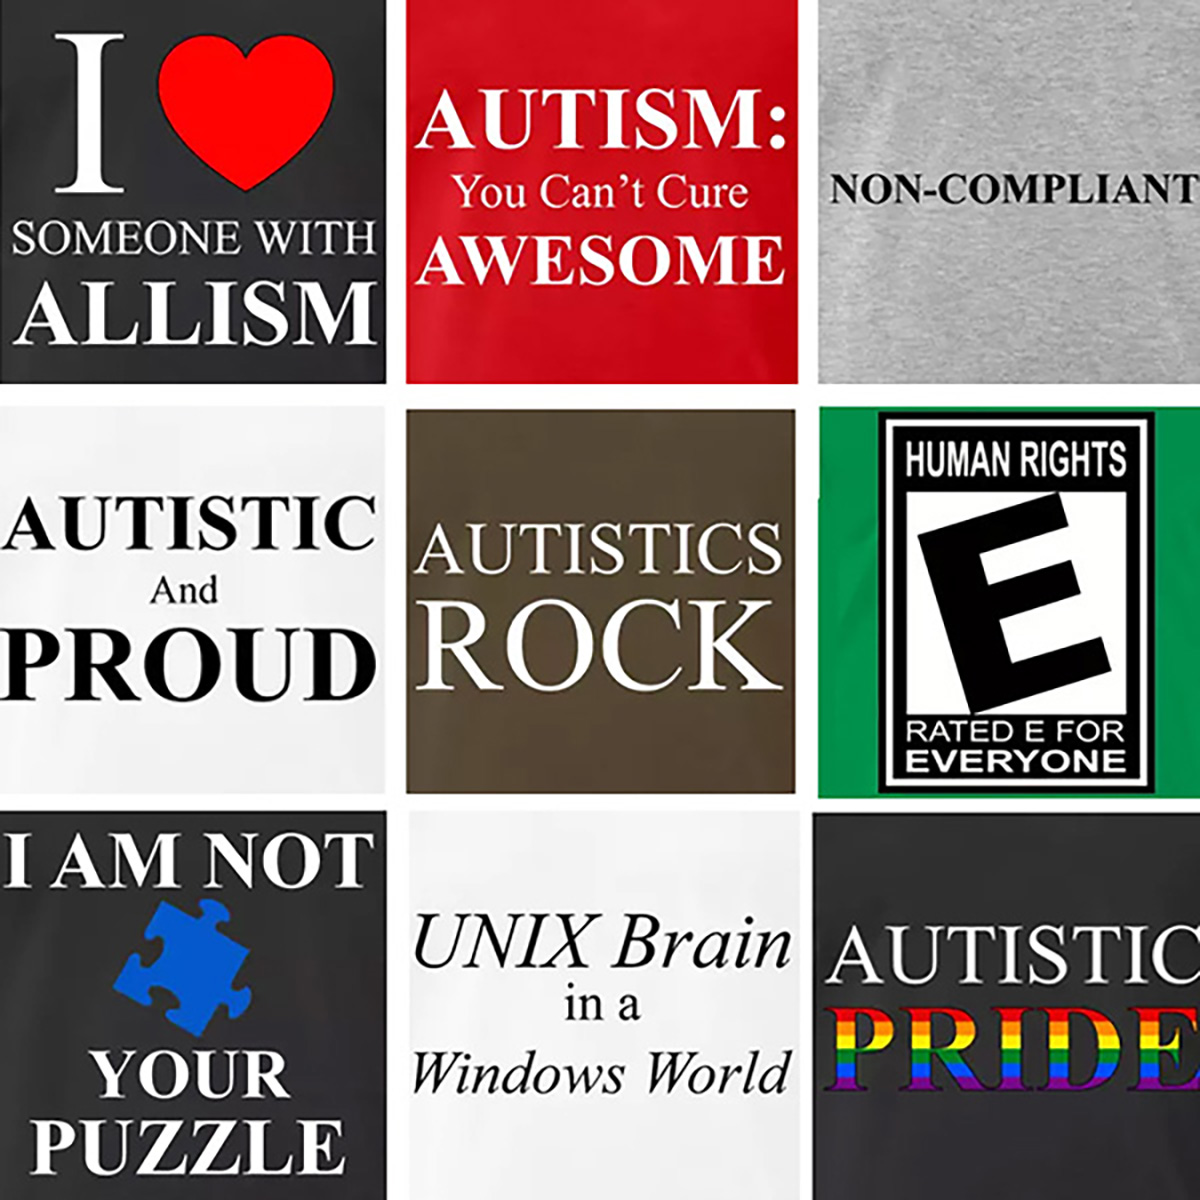 Image features a block of 9 tshirt designs featuring a variety of autistic pride and human rights designs.